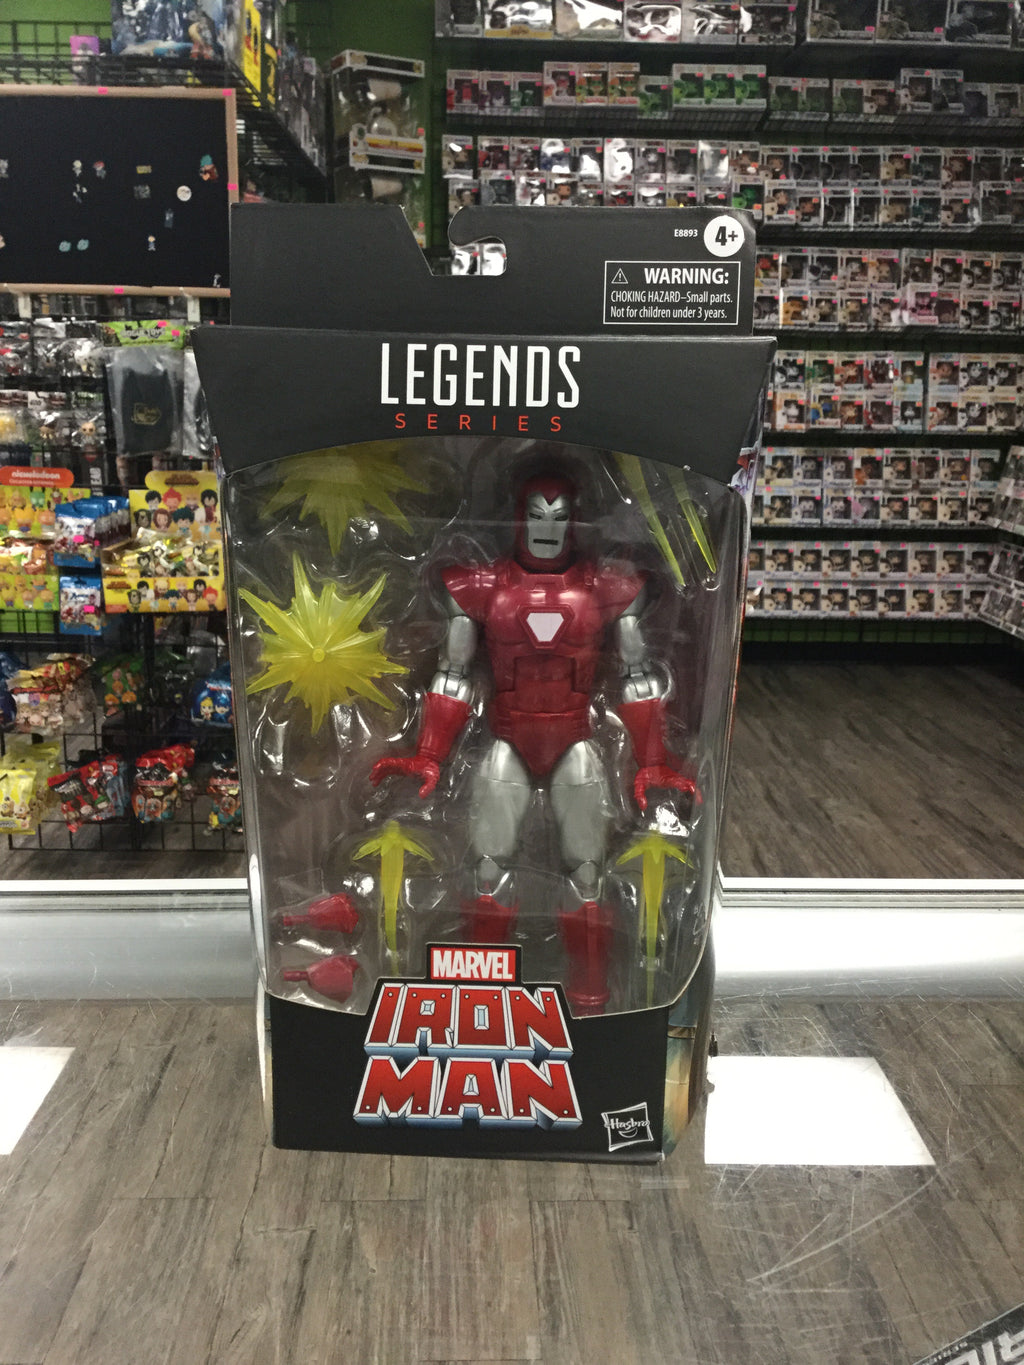 HASBRO Marvel Legends, Silver Centurion Iron Man (Walgreens Exclusive)